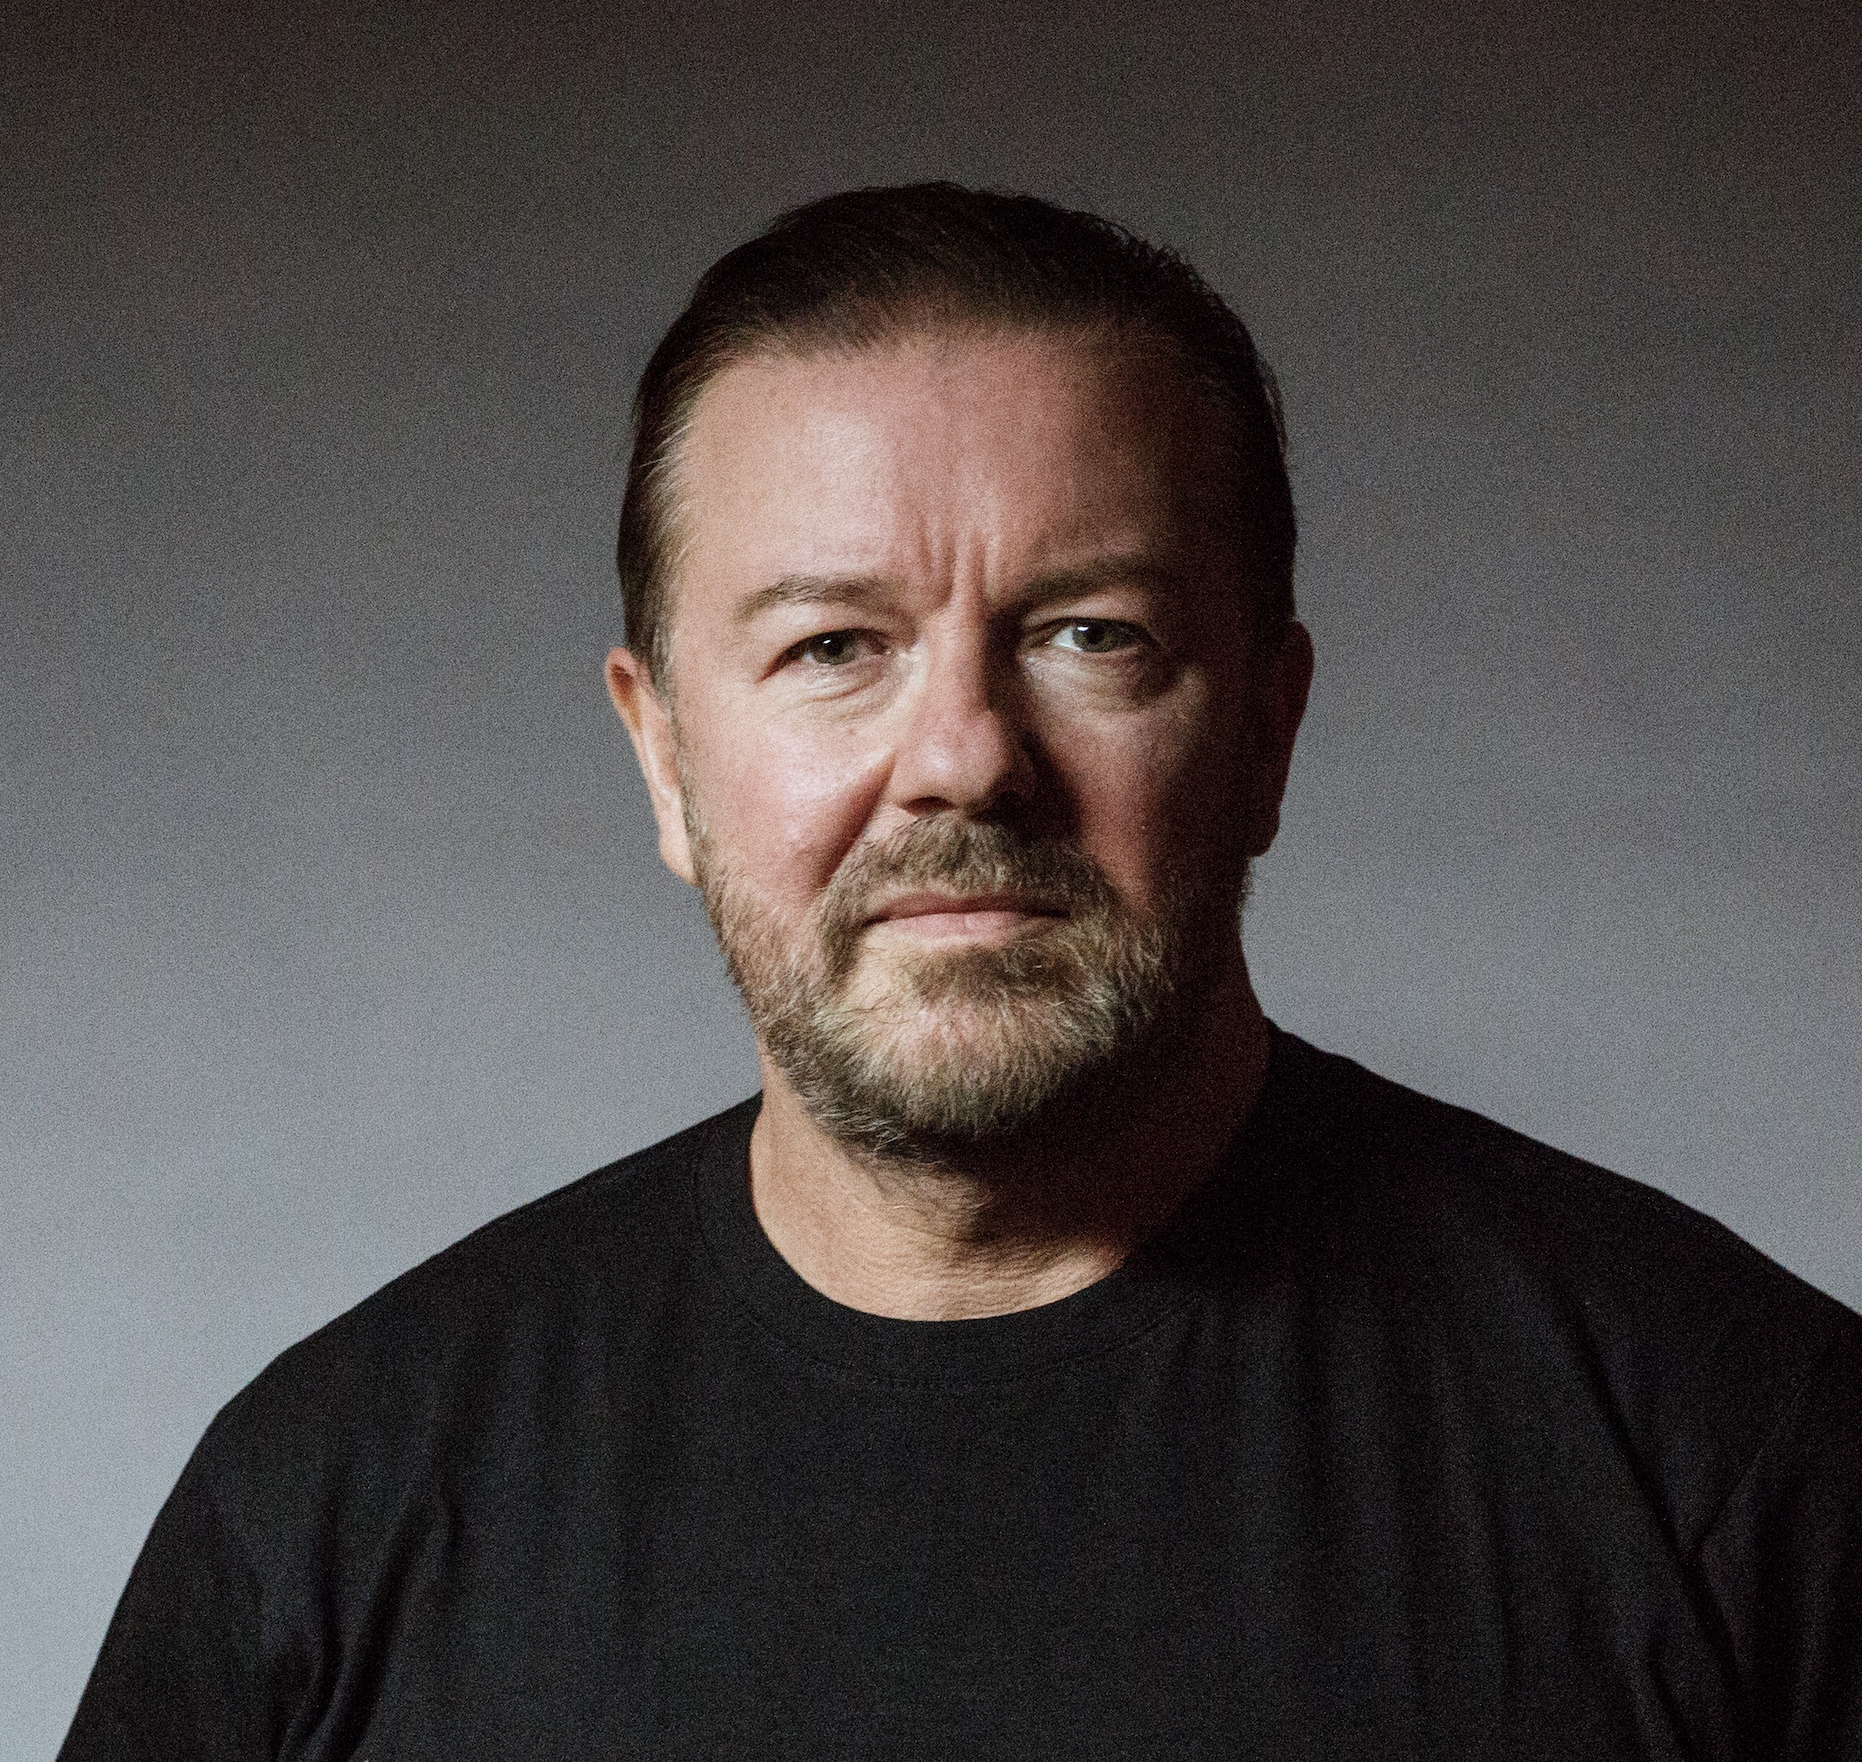 A film for Change for Animals Foundation. Featuring Ricky Gervais and Joanna Lumley, the film exposes the dog meat trade in Indonesia. - Read More...